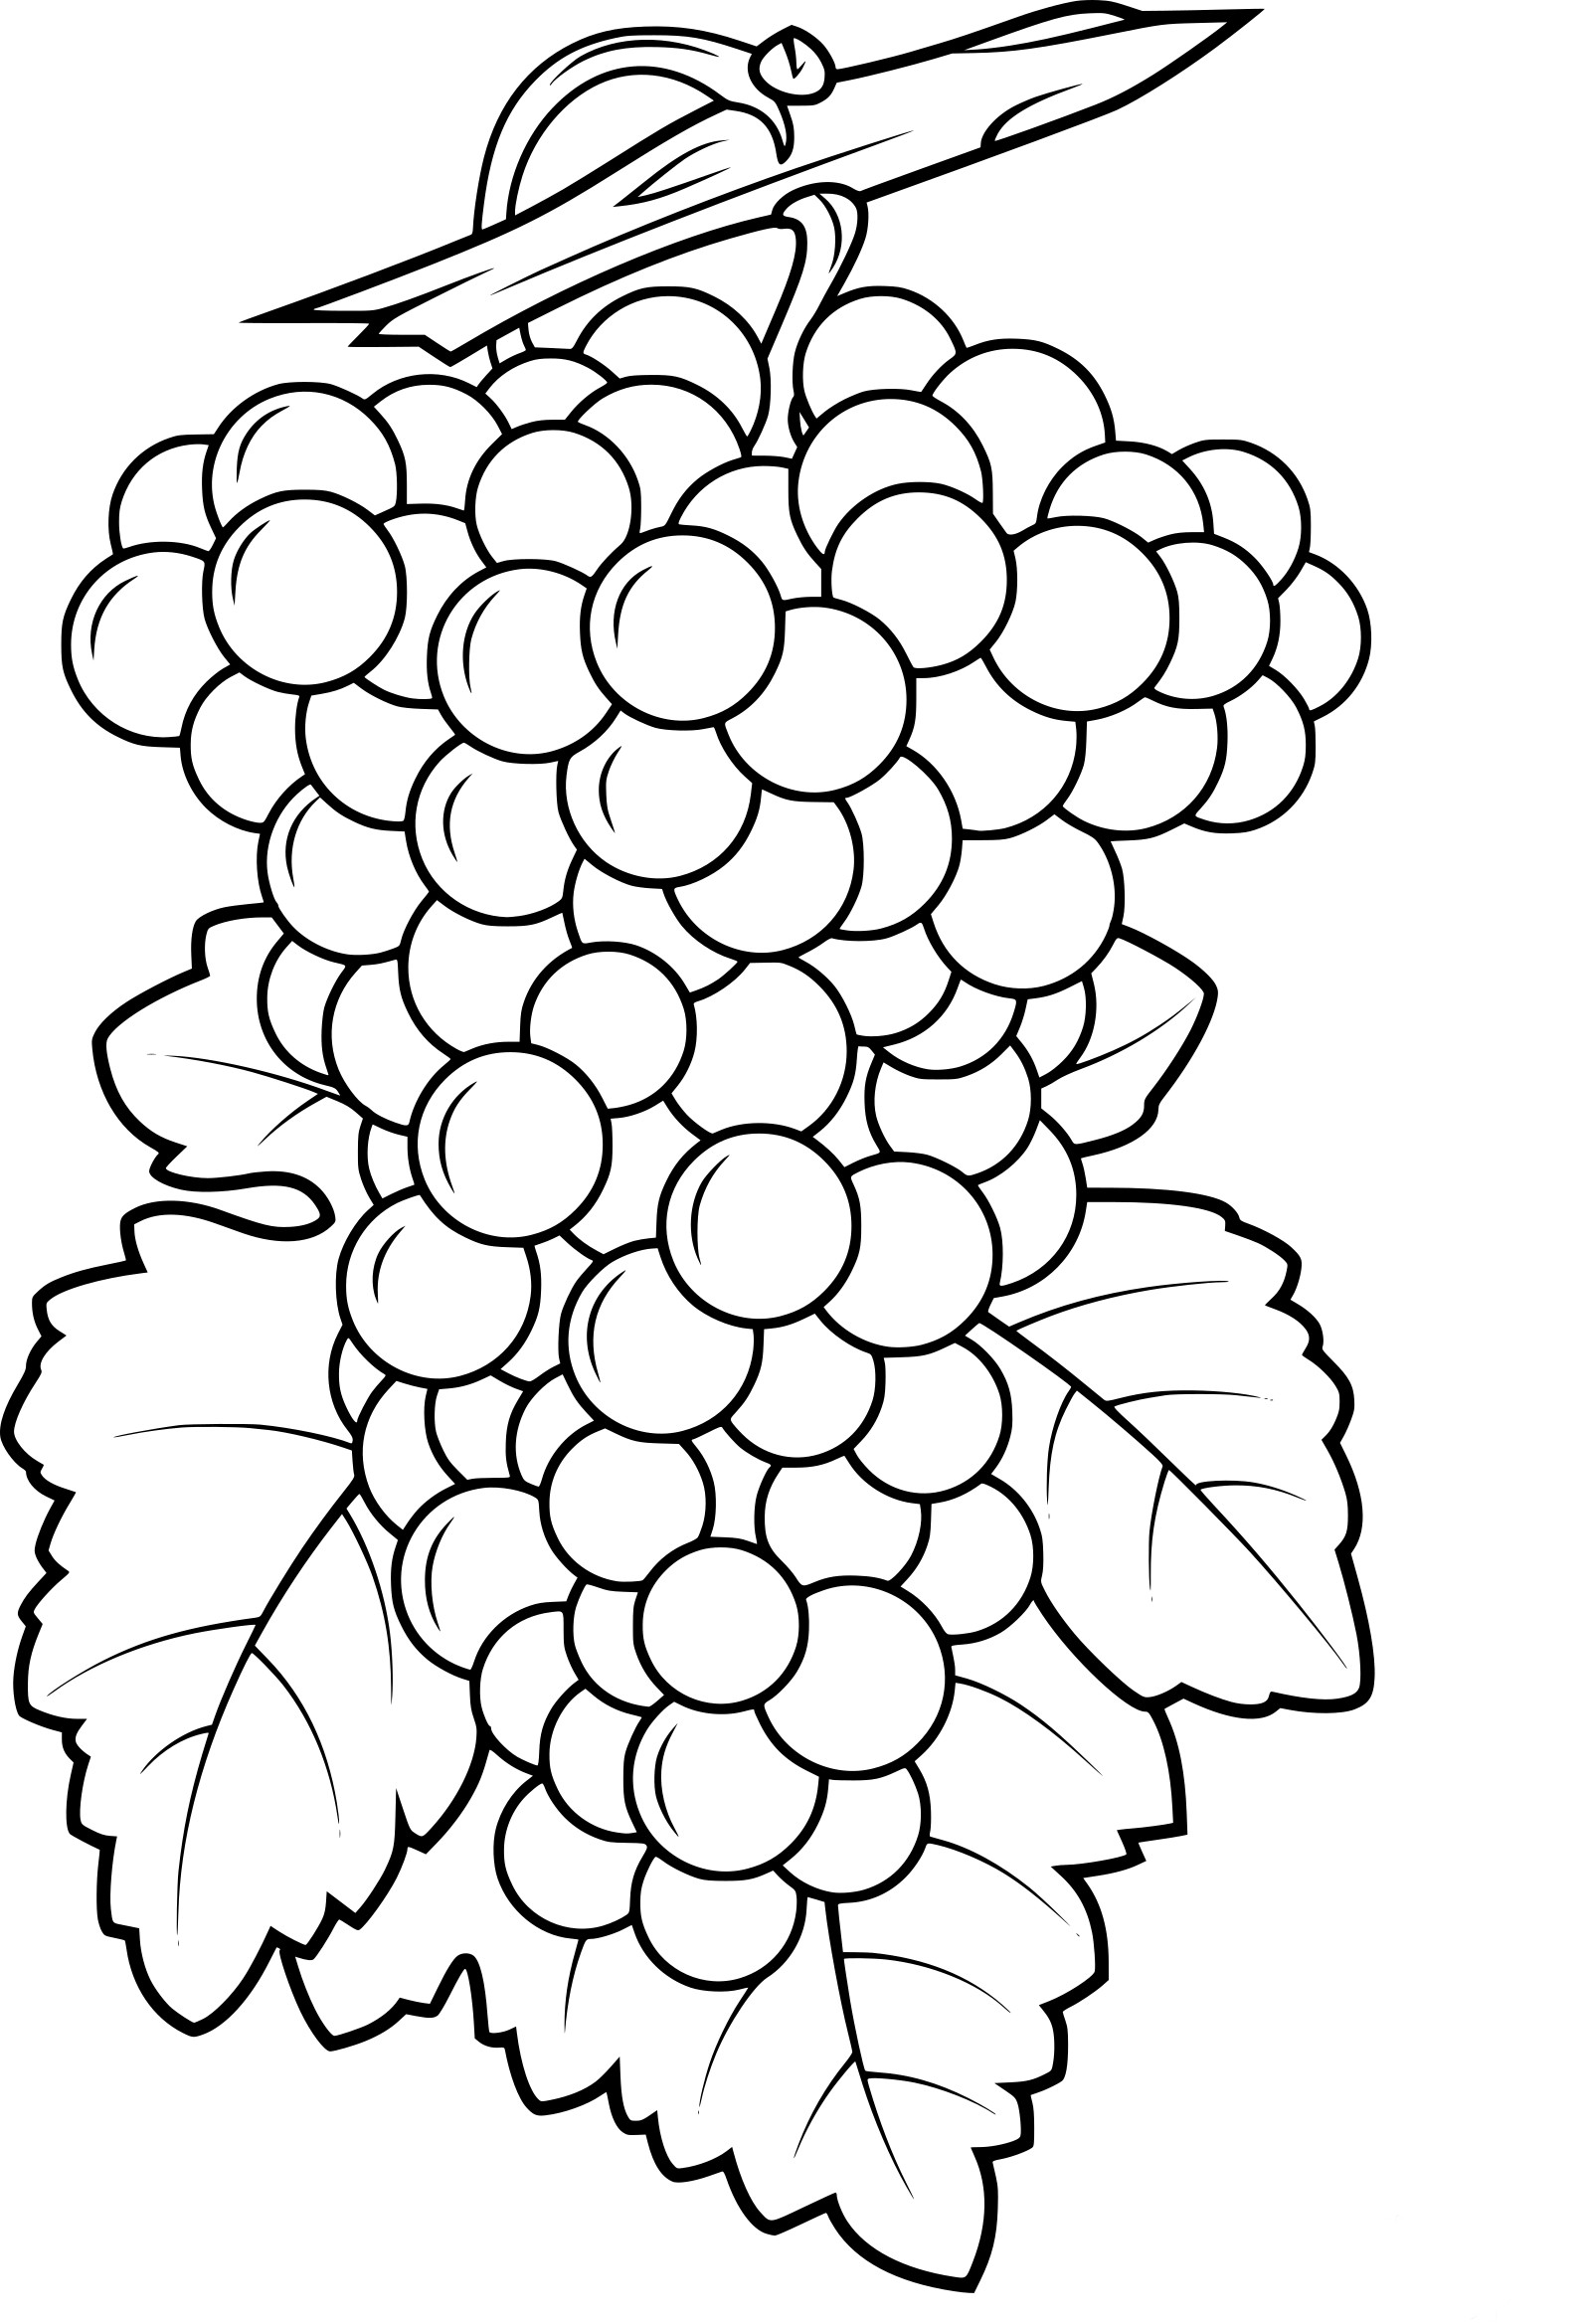 Coloriage raisin